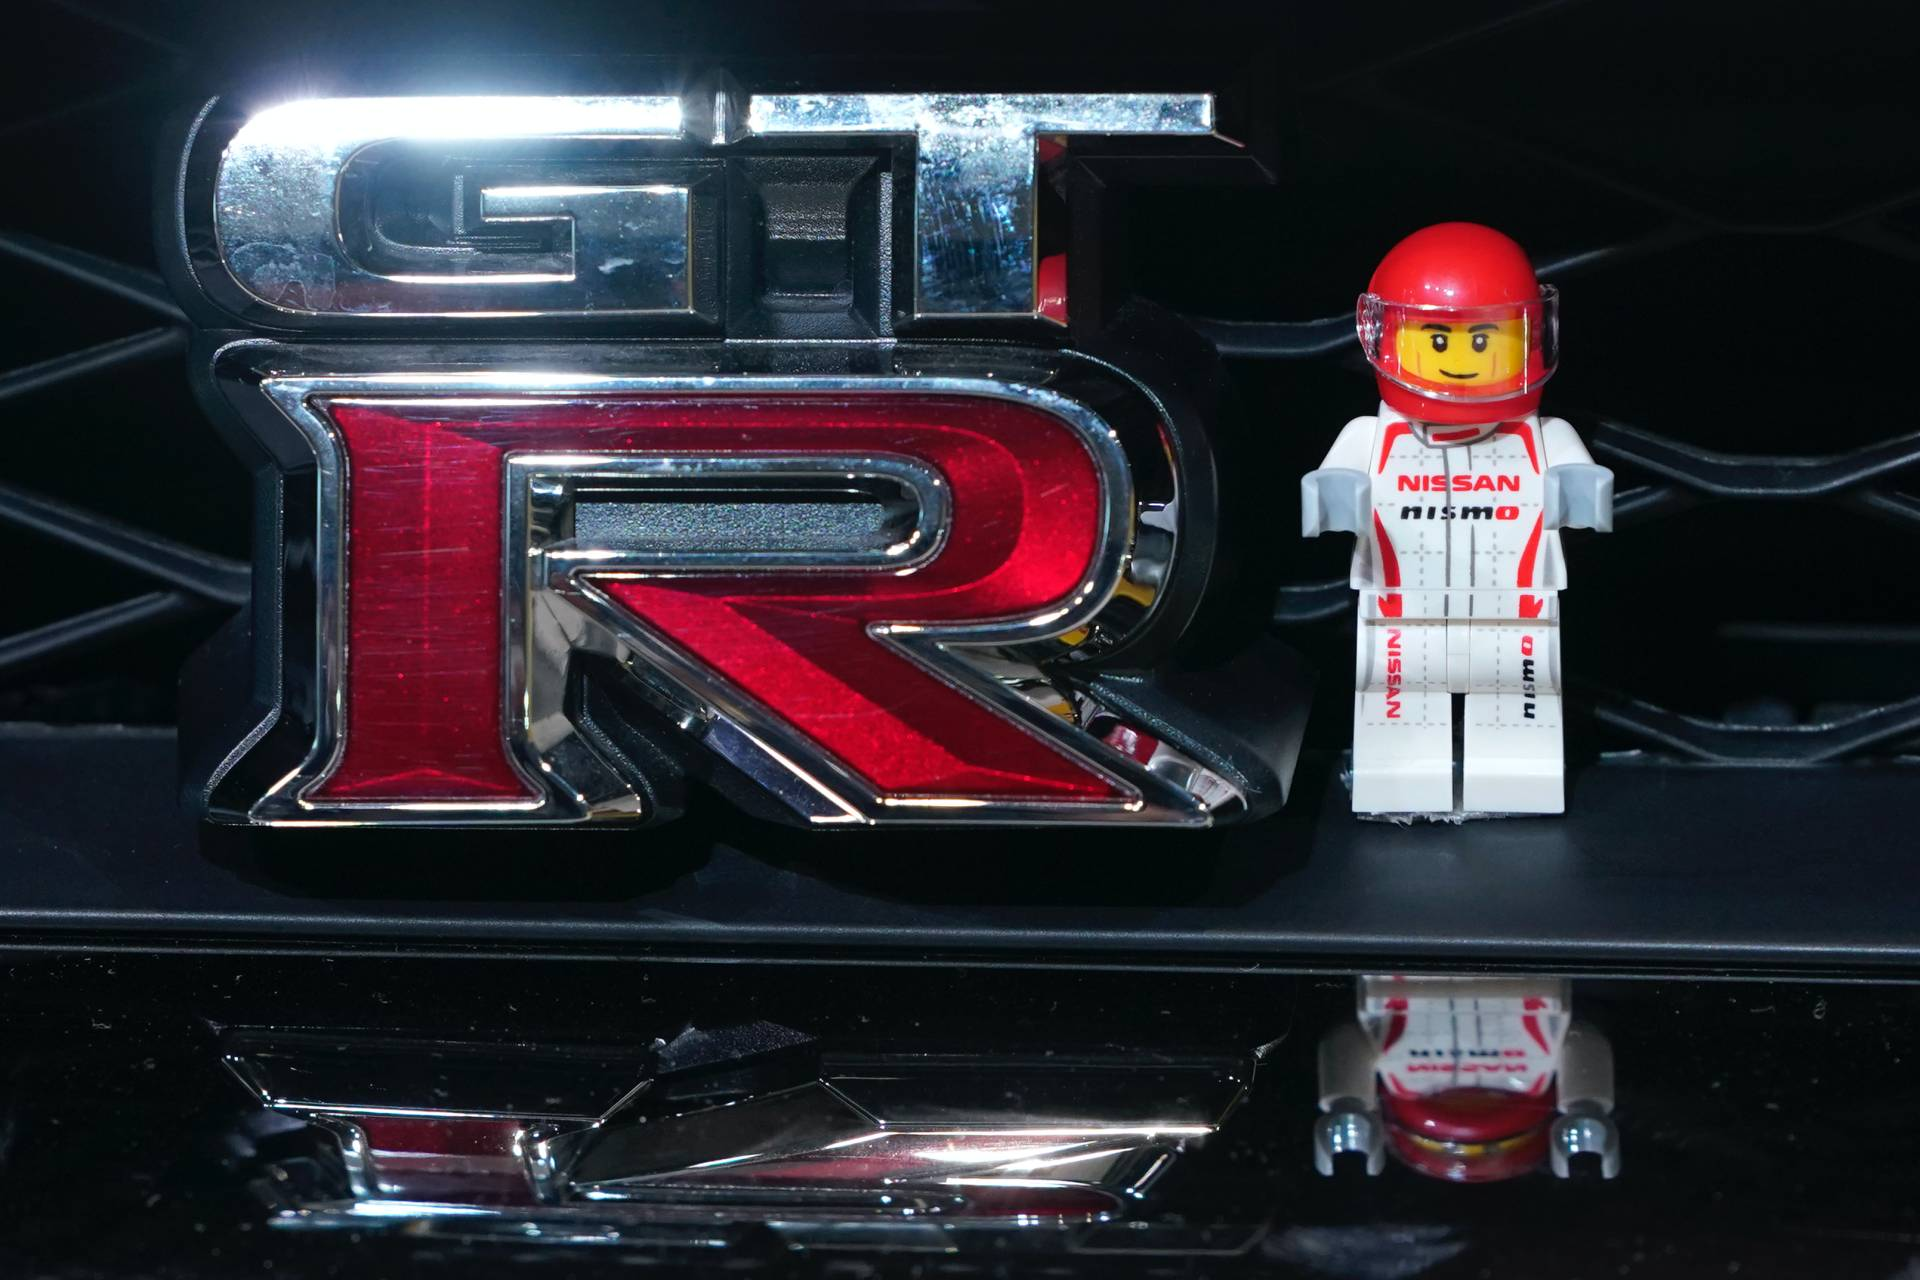 2020 Nissan Gt R Nismo And Lego Speed Champions Nissan Gt R Nismo 4